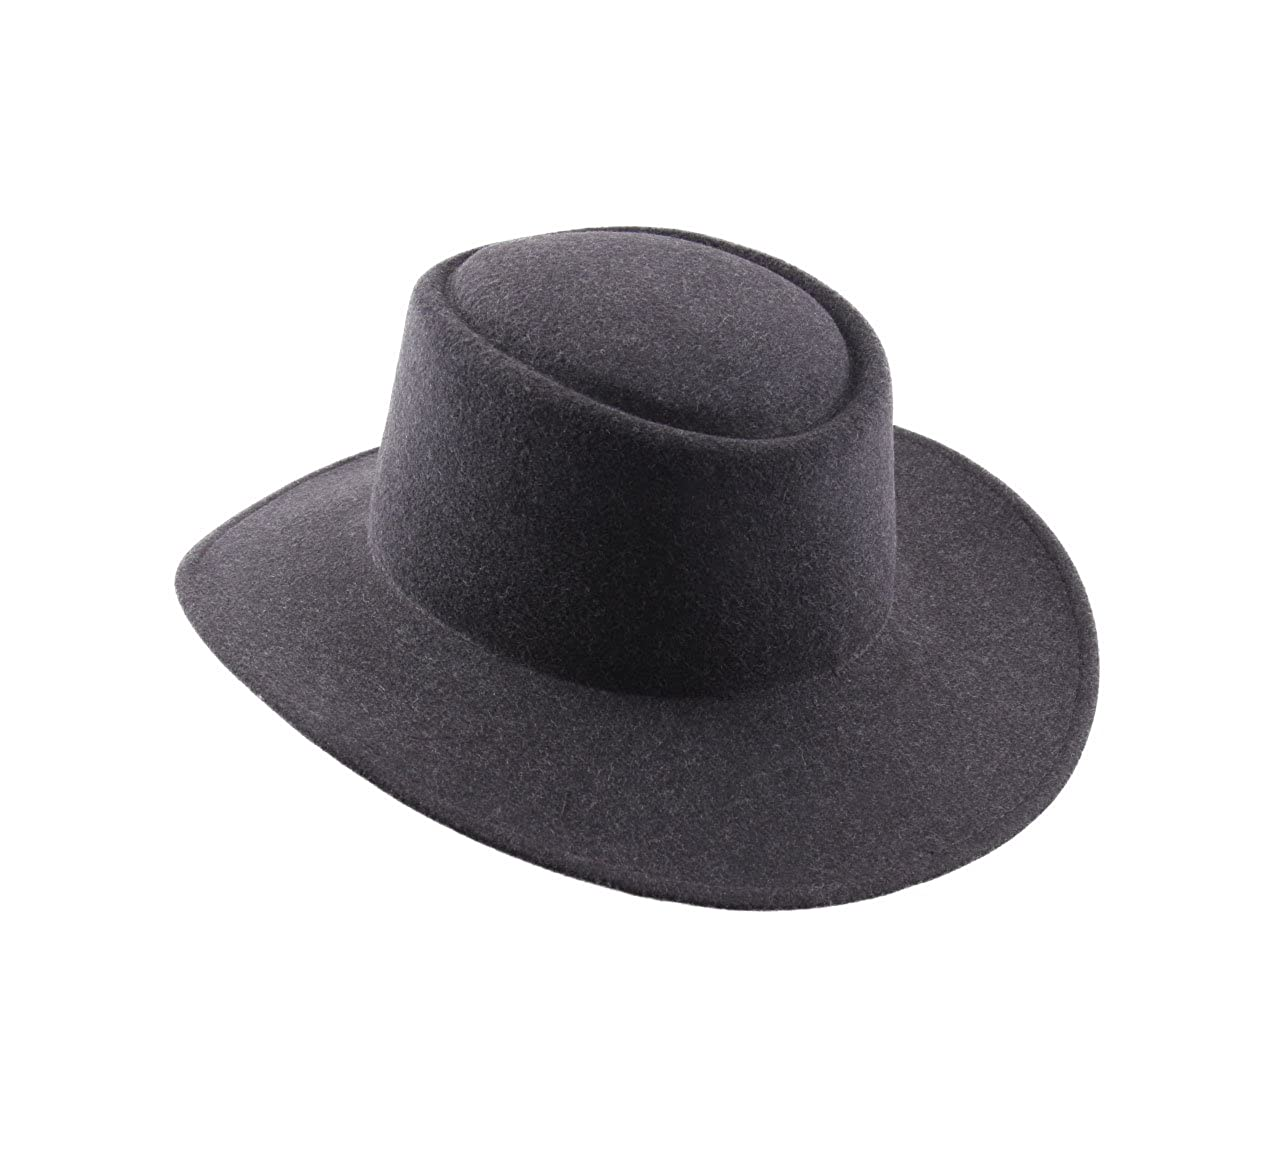 53a47e792f7 Classic Italy Nude Cordobes Wool Felt Fedora Hat at Amazon Men s Clothing  store